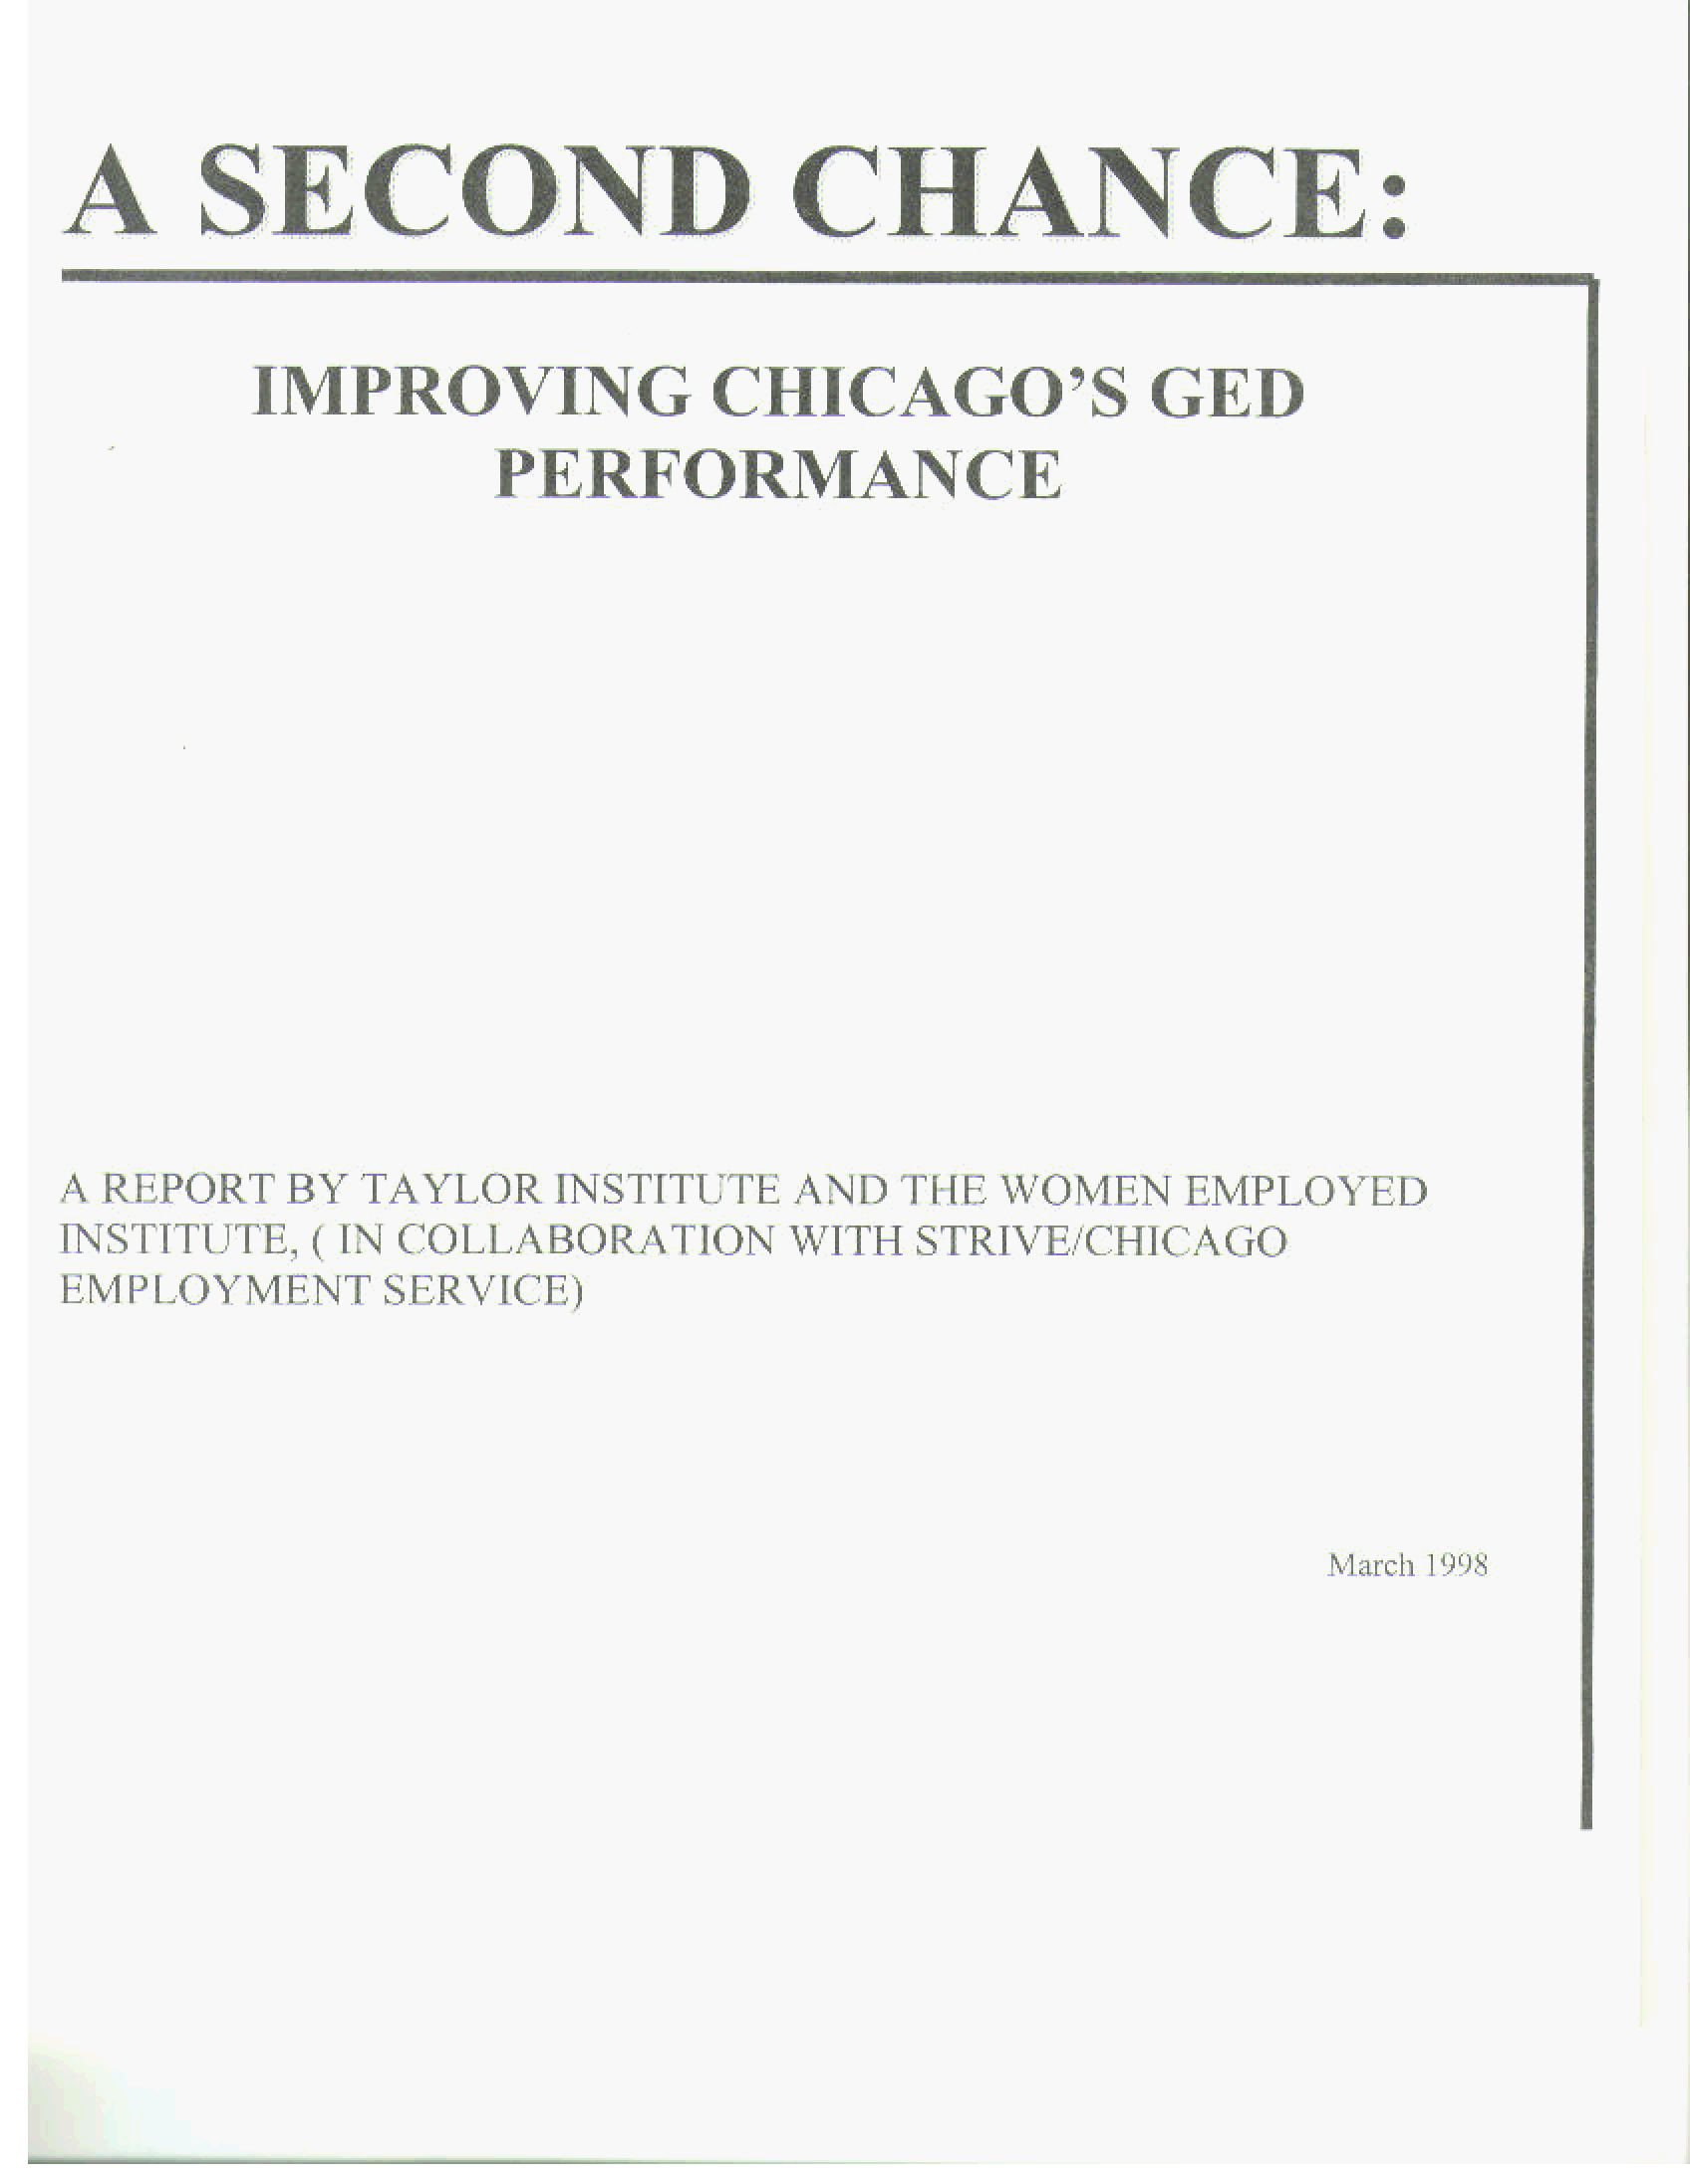 A Second Chance: Improving Chicago's GED Performance